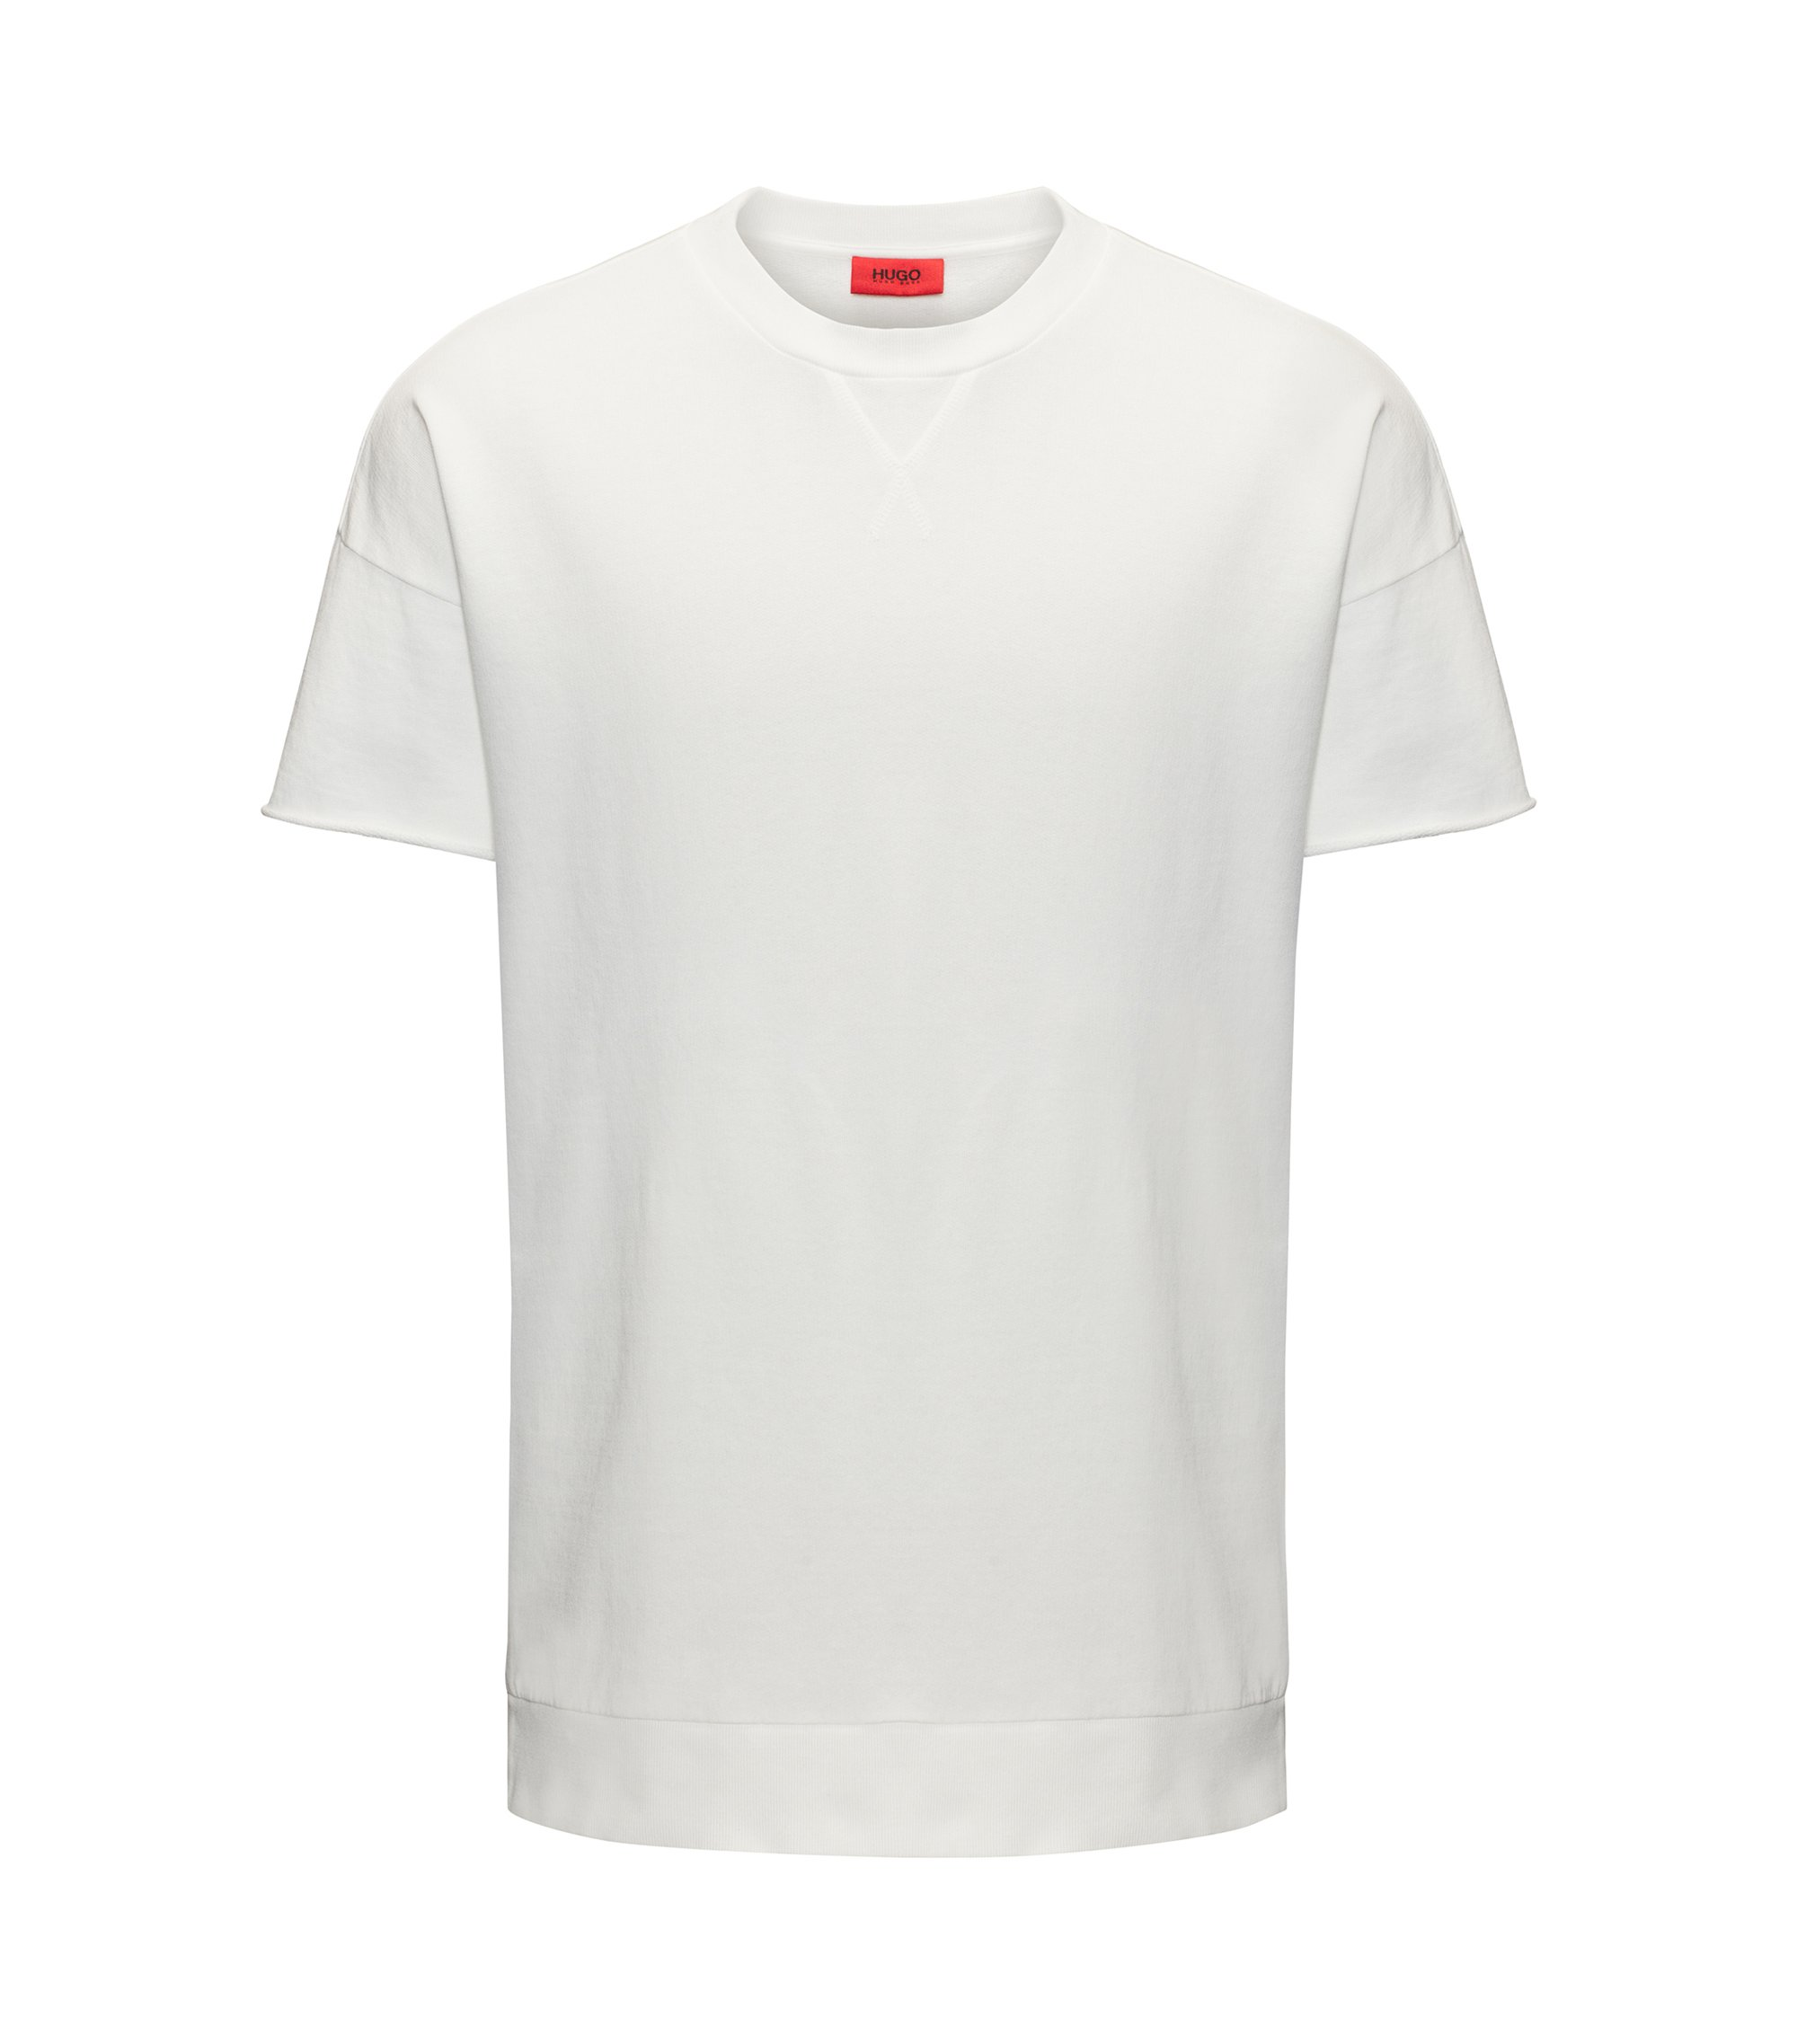 T-shirt oversize in french terry tinto in capo, Naturale